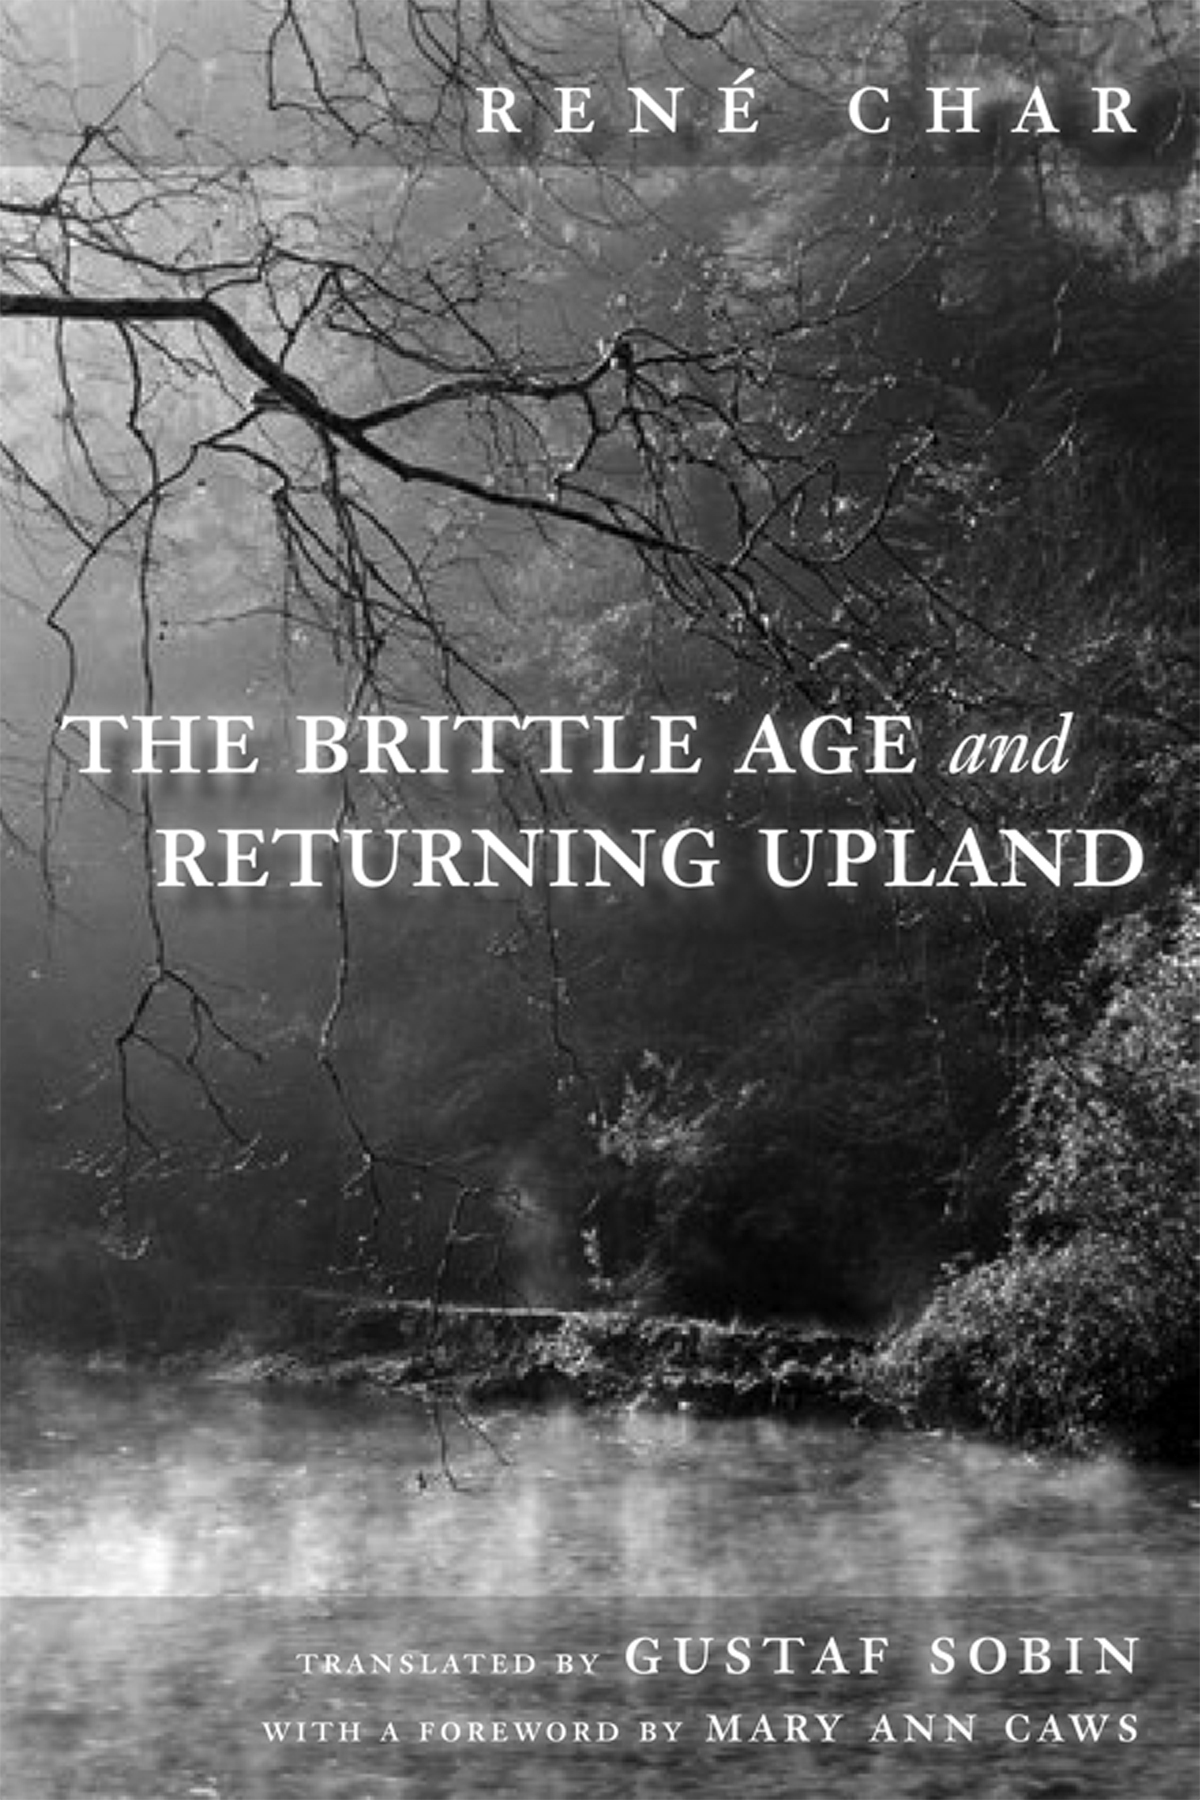 The Brittle Age and Returning Uplandby René Char Translated by Gustaf Sobin